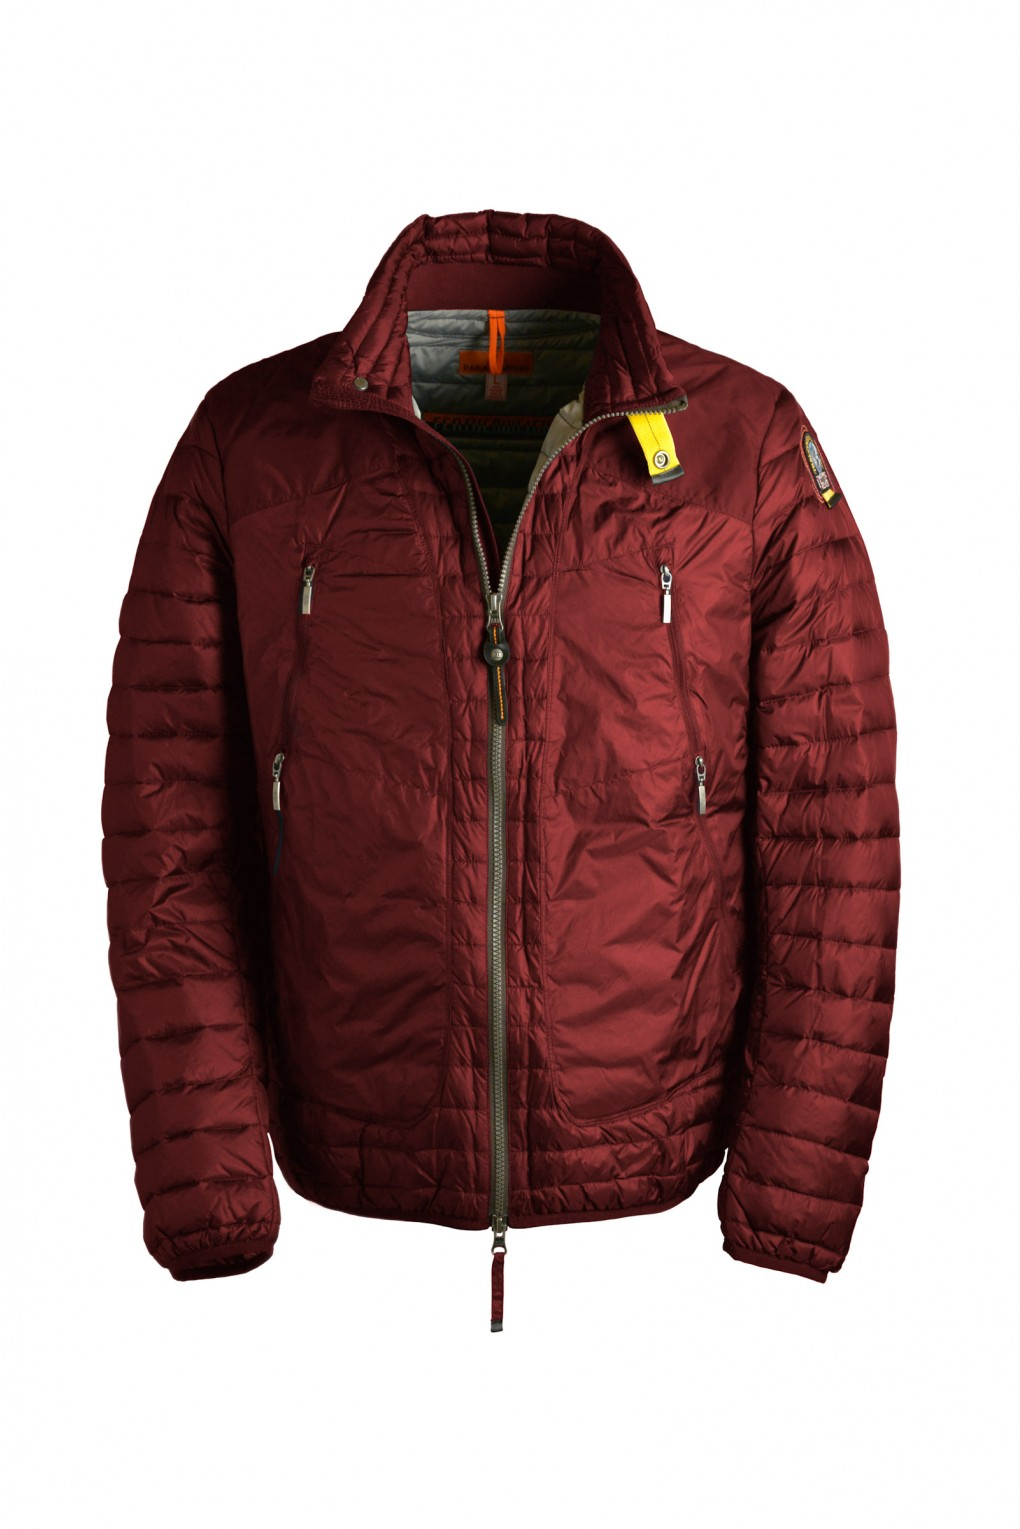 parajumpers GIULY man outerwear Red